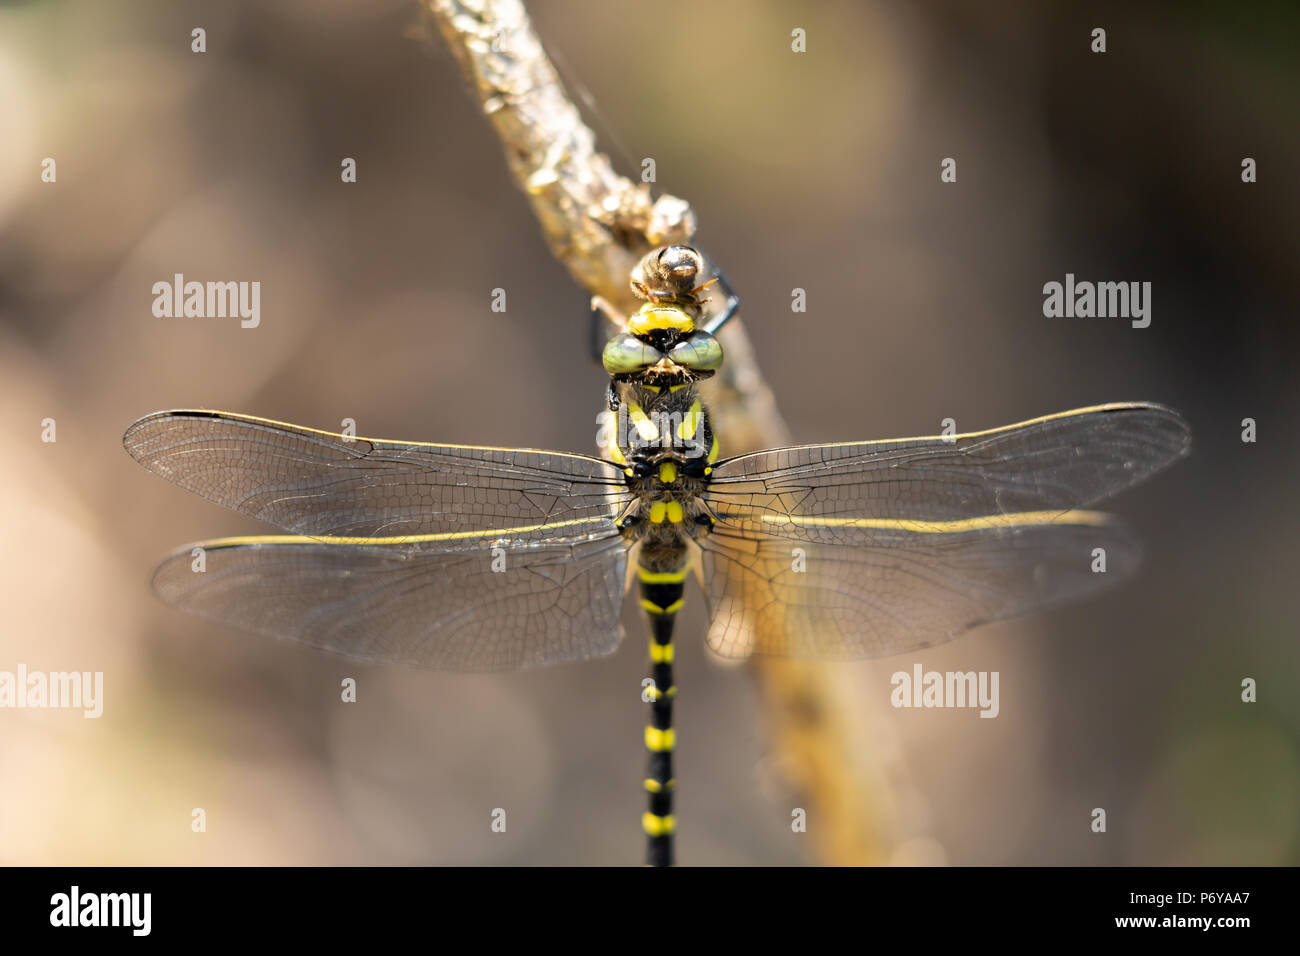 Macro photo of Golden-Ringed Dragonfly perched on stick while consuming its bee prey. Taken on Canford heath nature reserve, Poole. - Stock Image